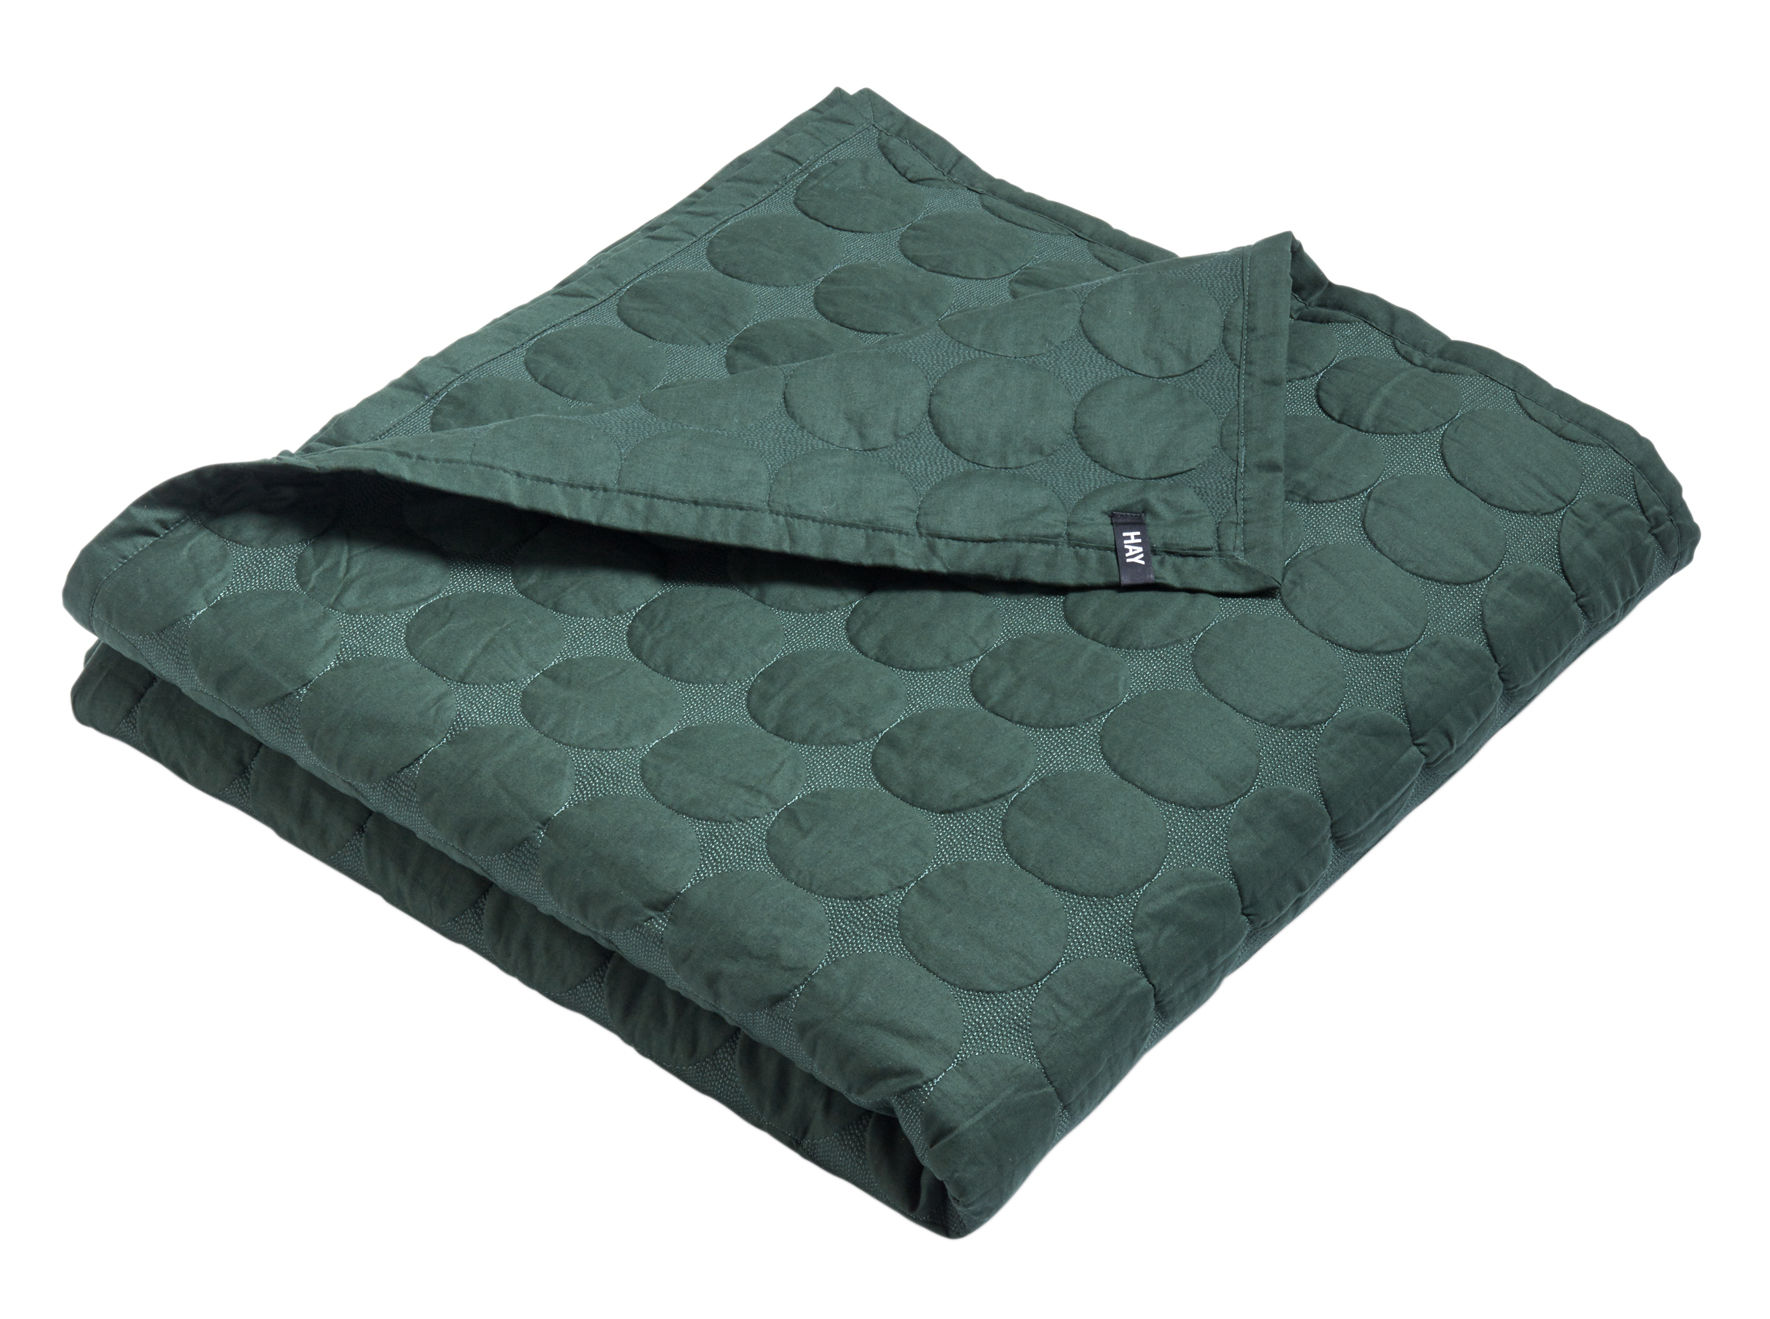 Decoration - Bedding & Bath Towels - Mega Dot Plaid - / 245 x 195 cm - Quilted by Hay - Dark green - Cotton, Polyester